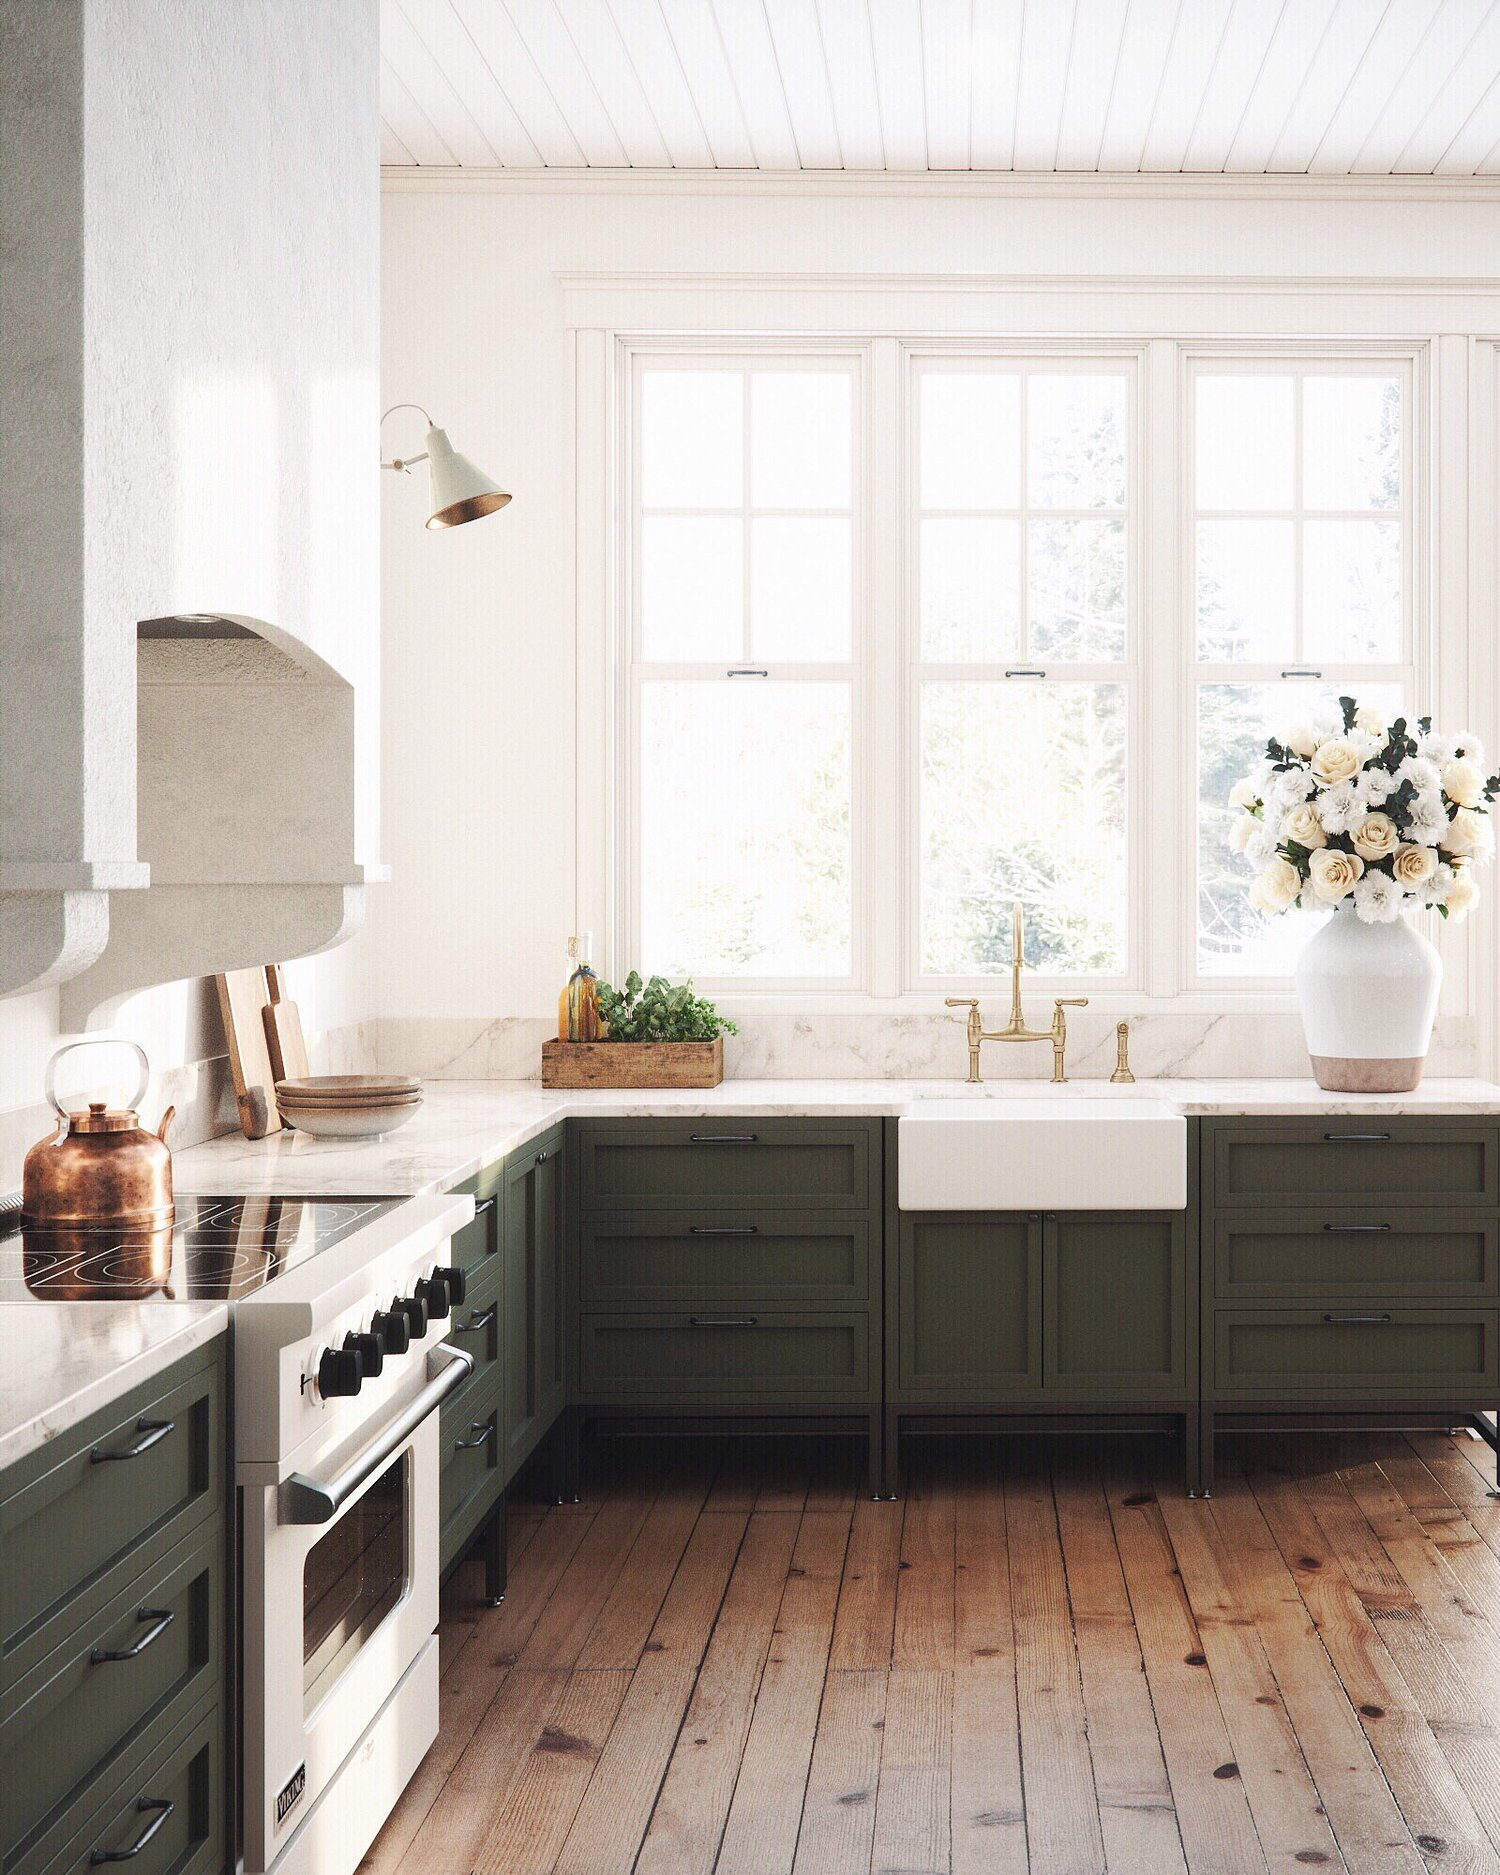 Beautiful Kitchen Design Ideas To Inspire Your Next Renovation